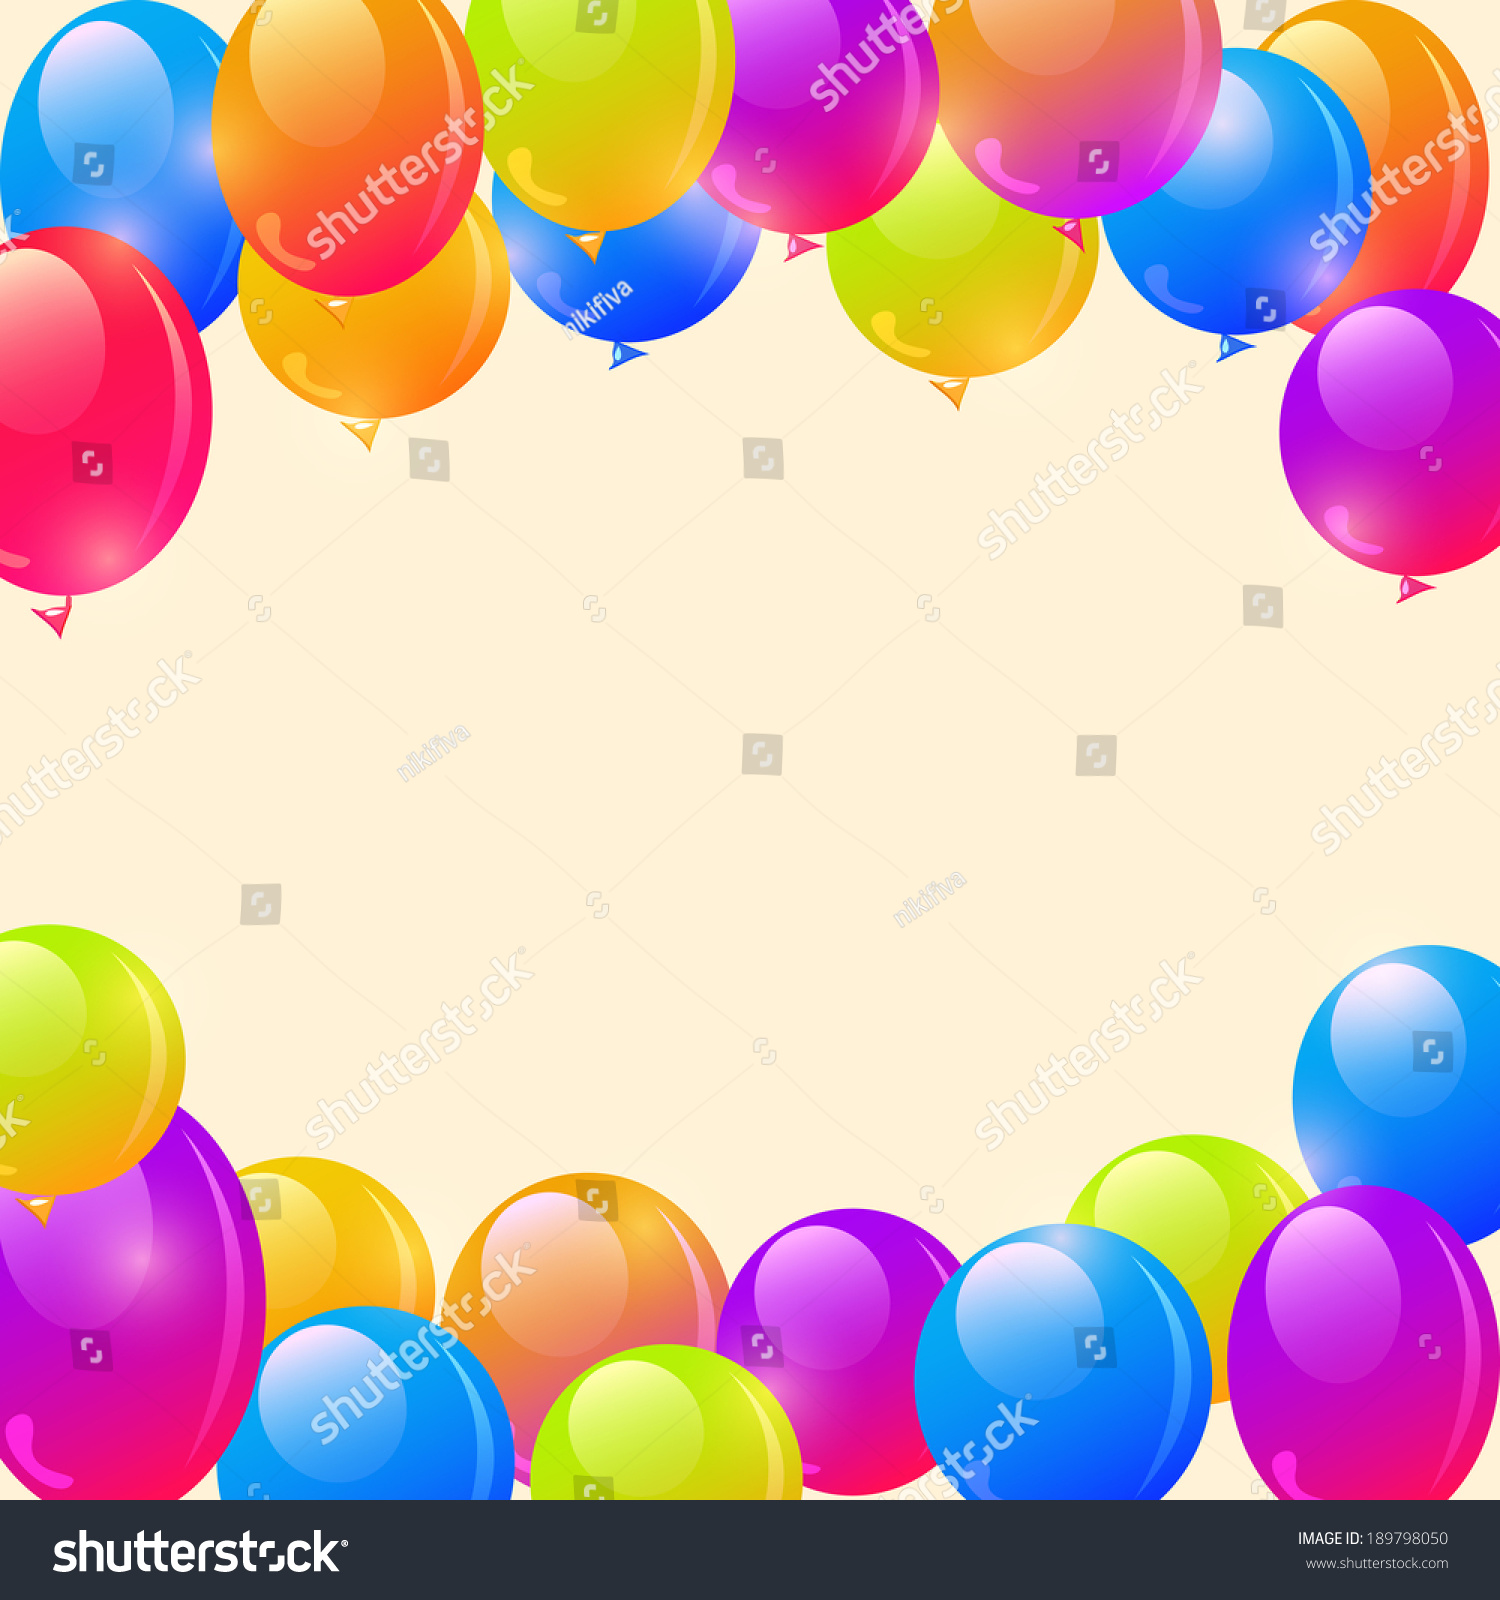 bright balloon frame background and place for text in the middle